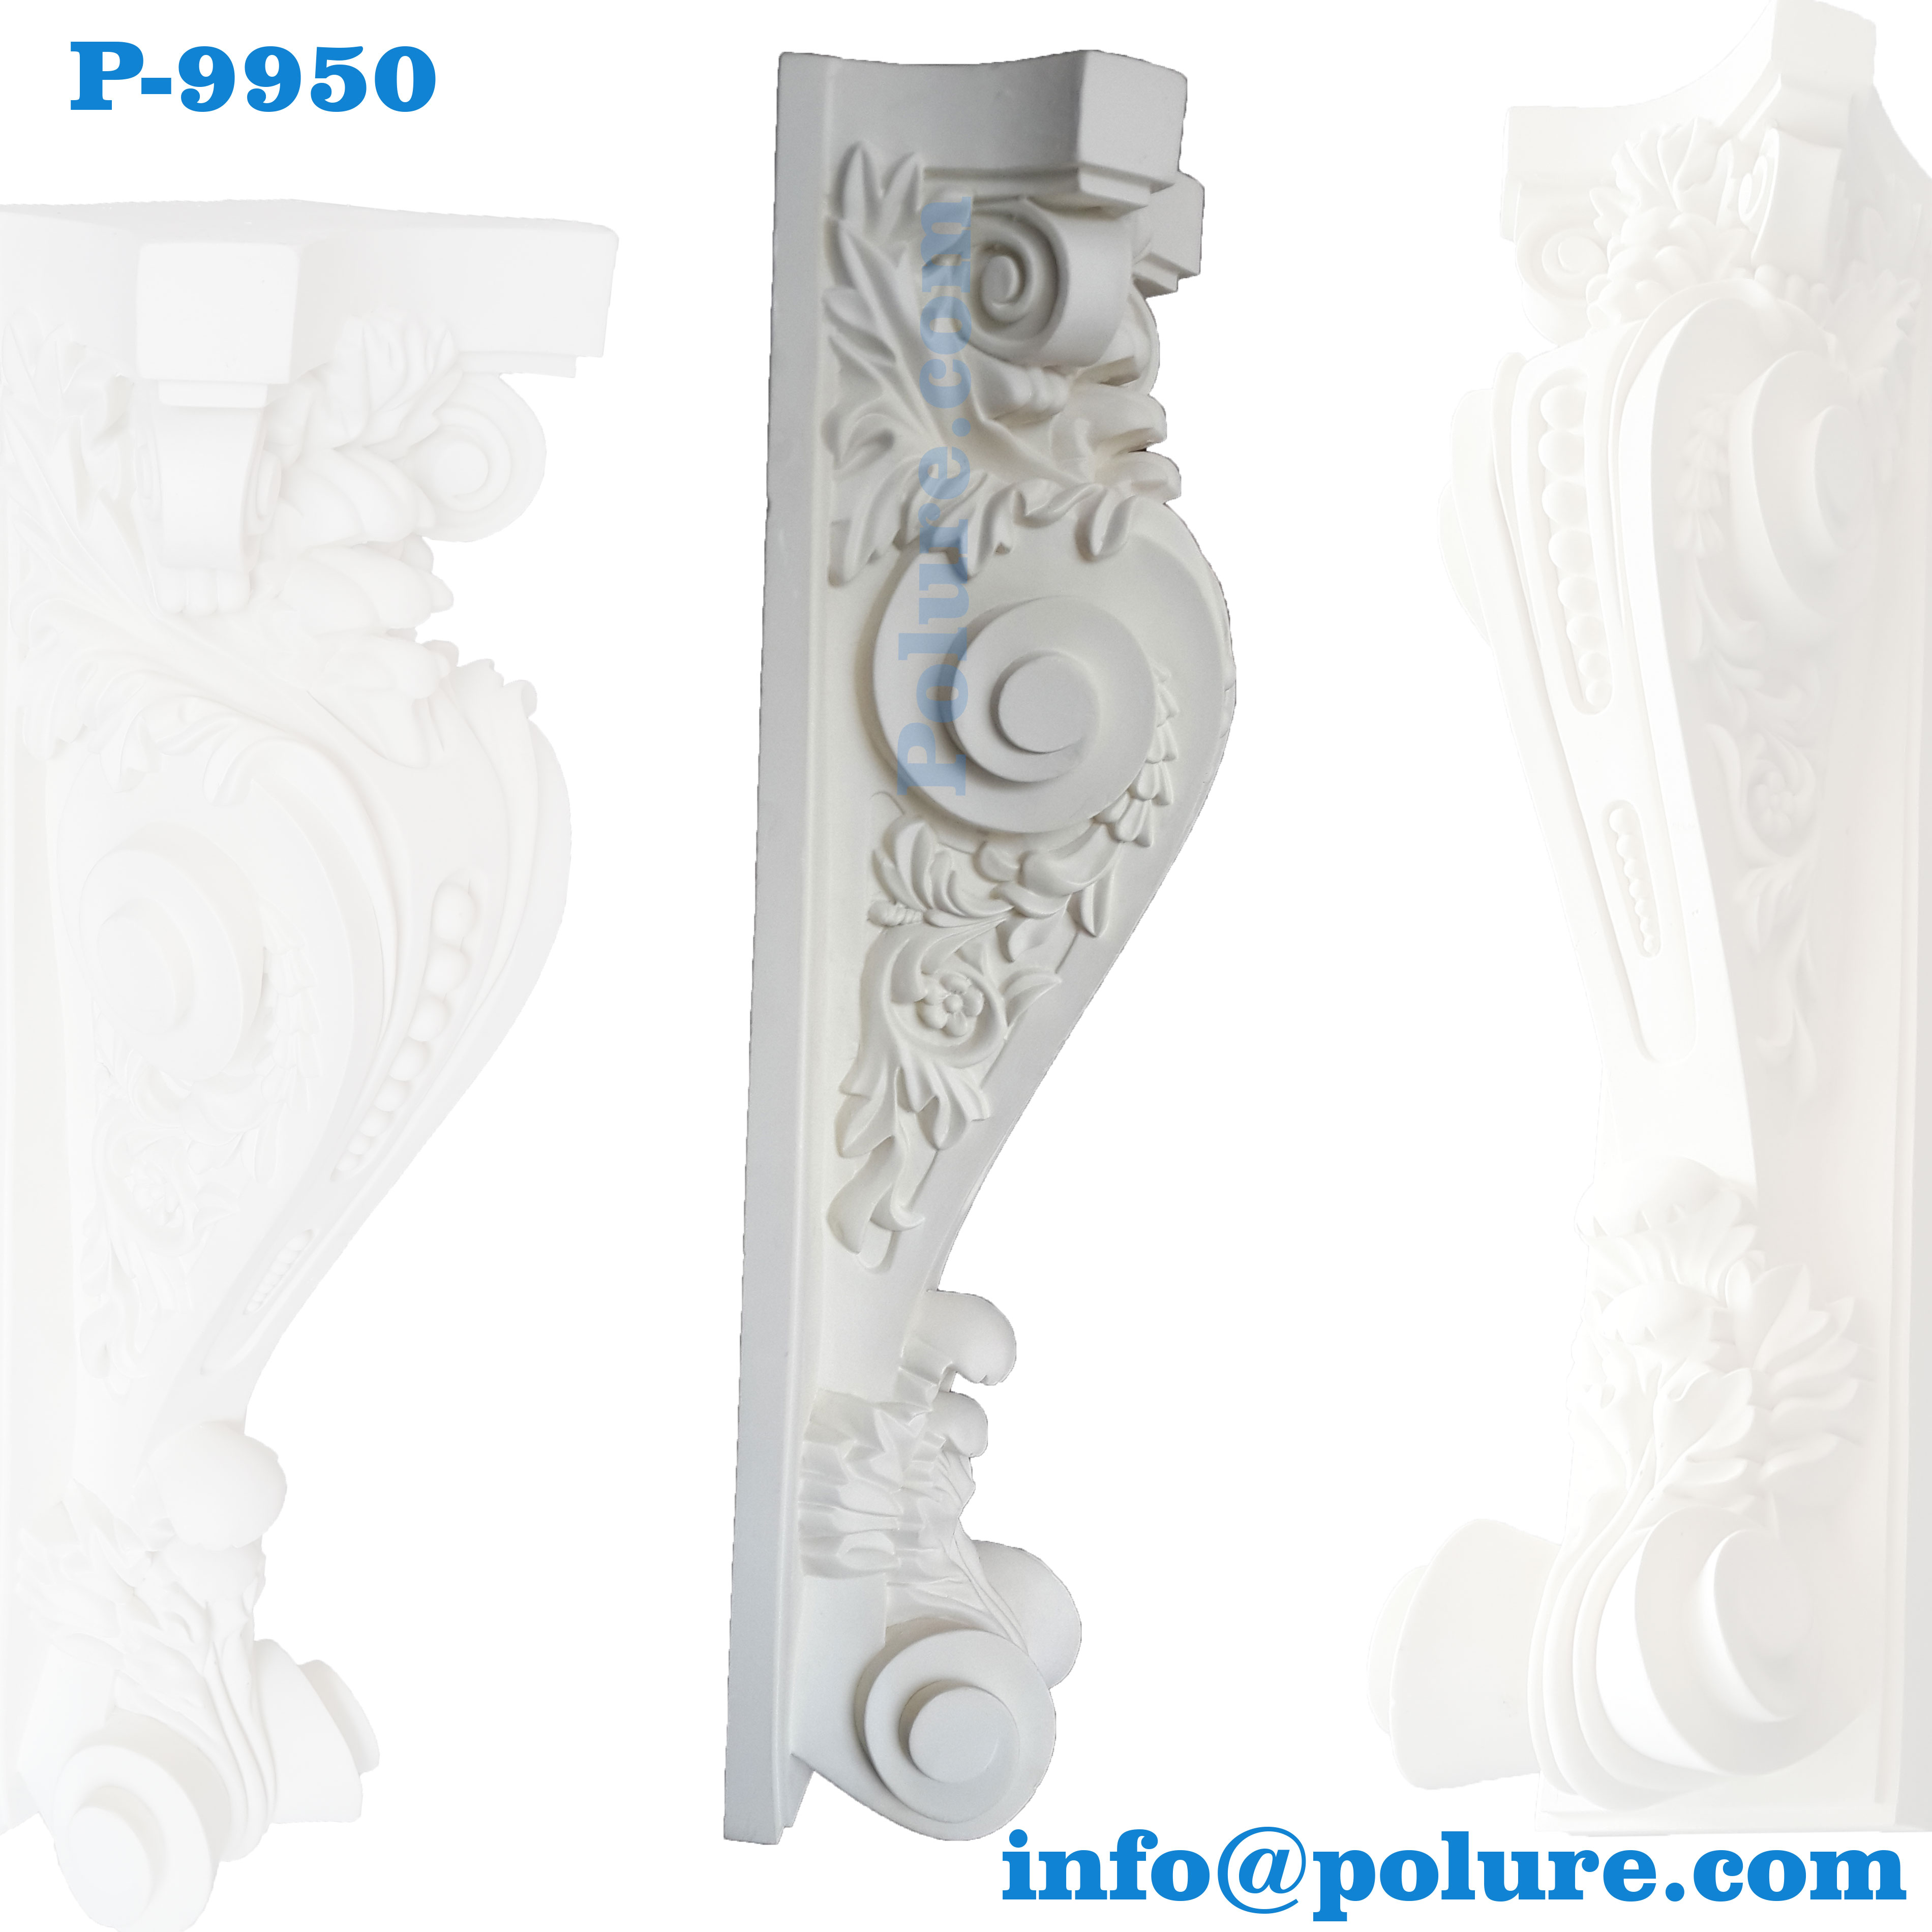 P-9950-polyurethane-classic-decorative-corbel-moulding-interior-exterior-decoration-pu (8)